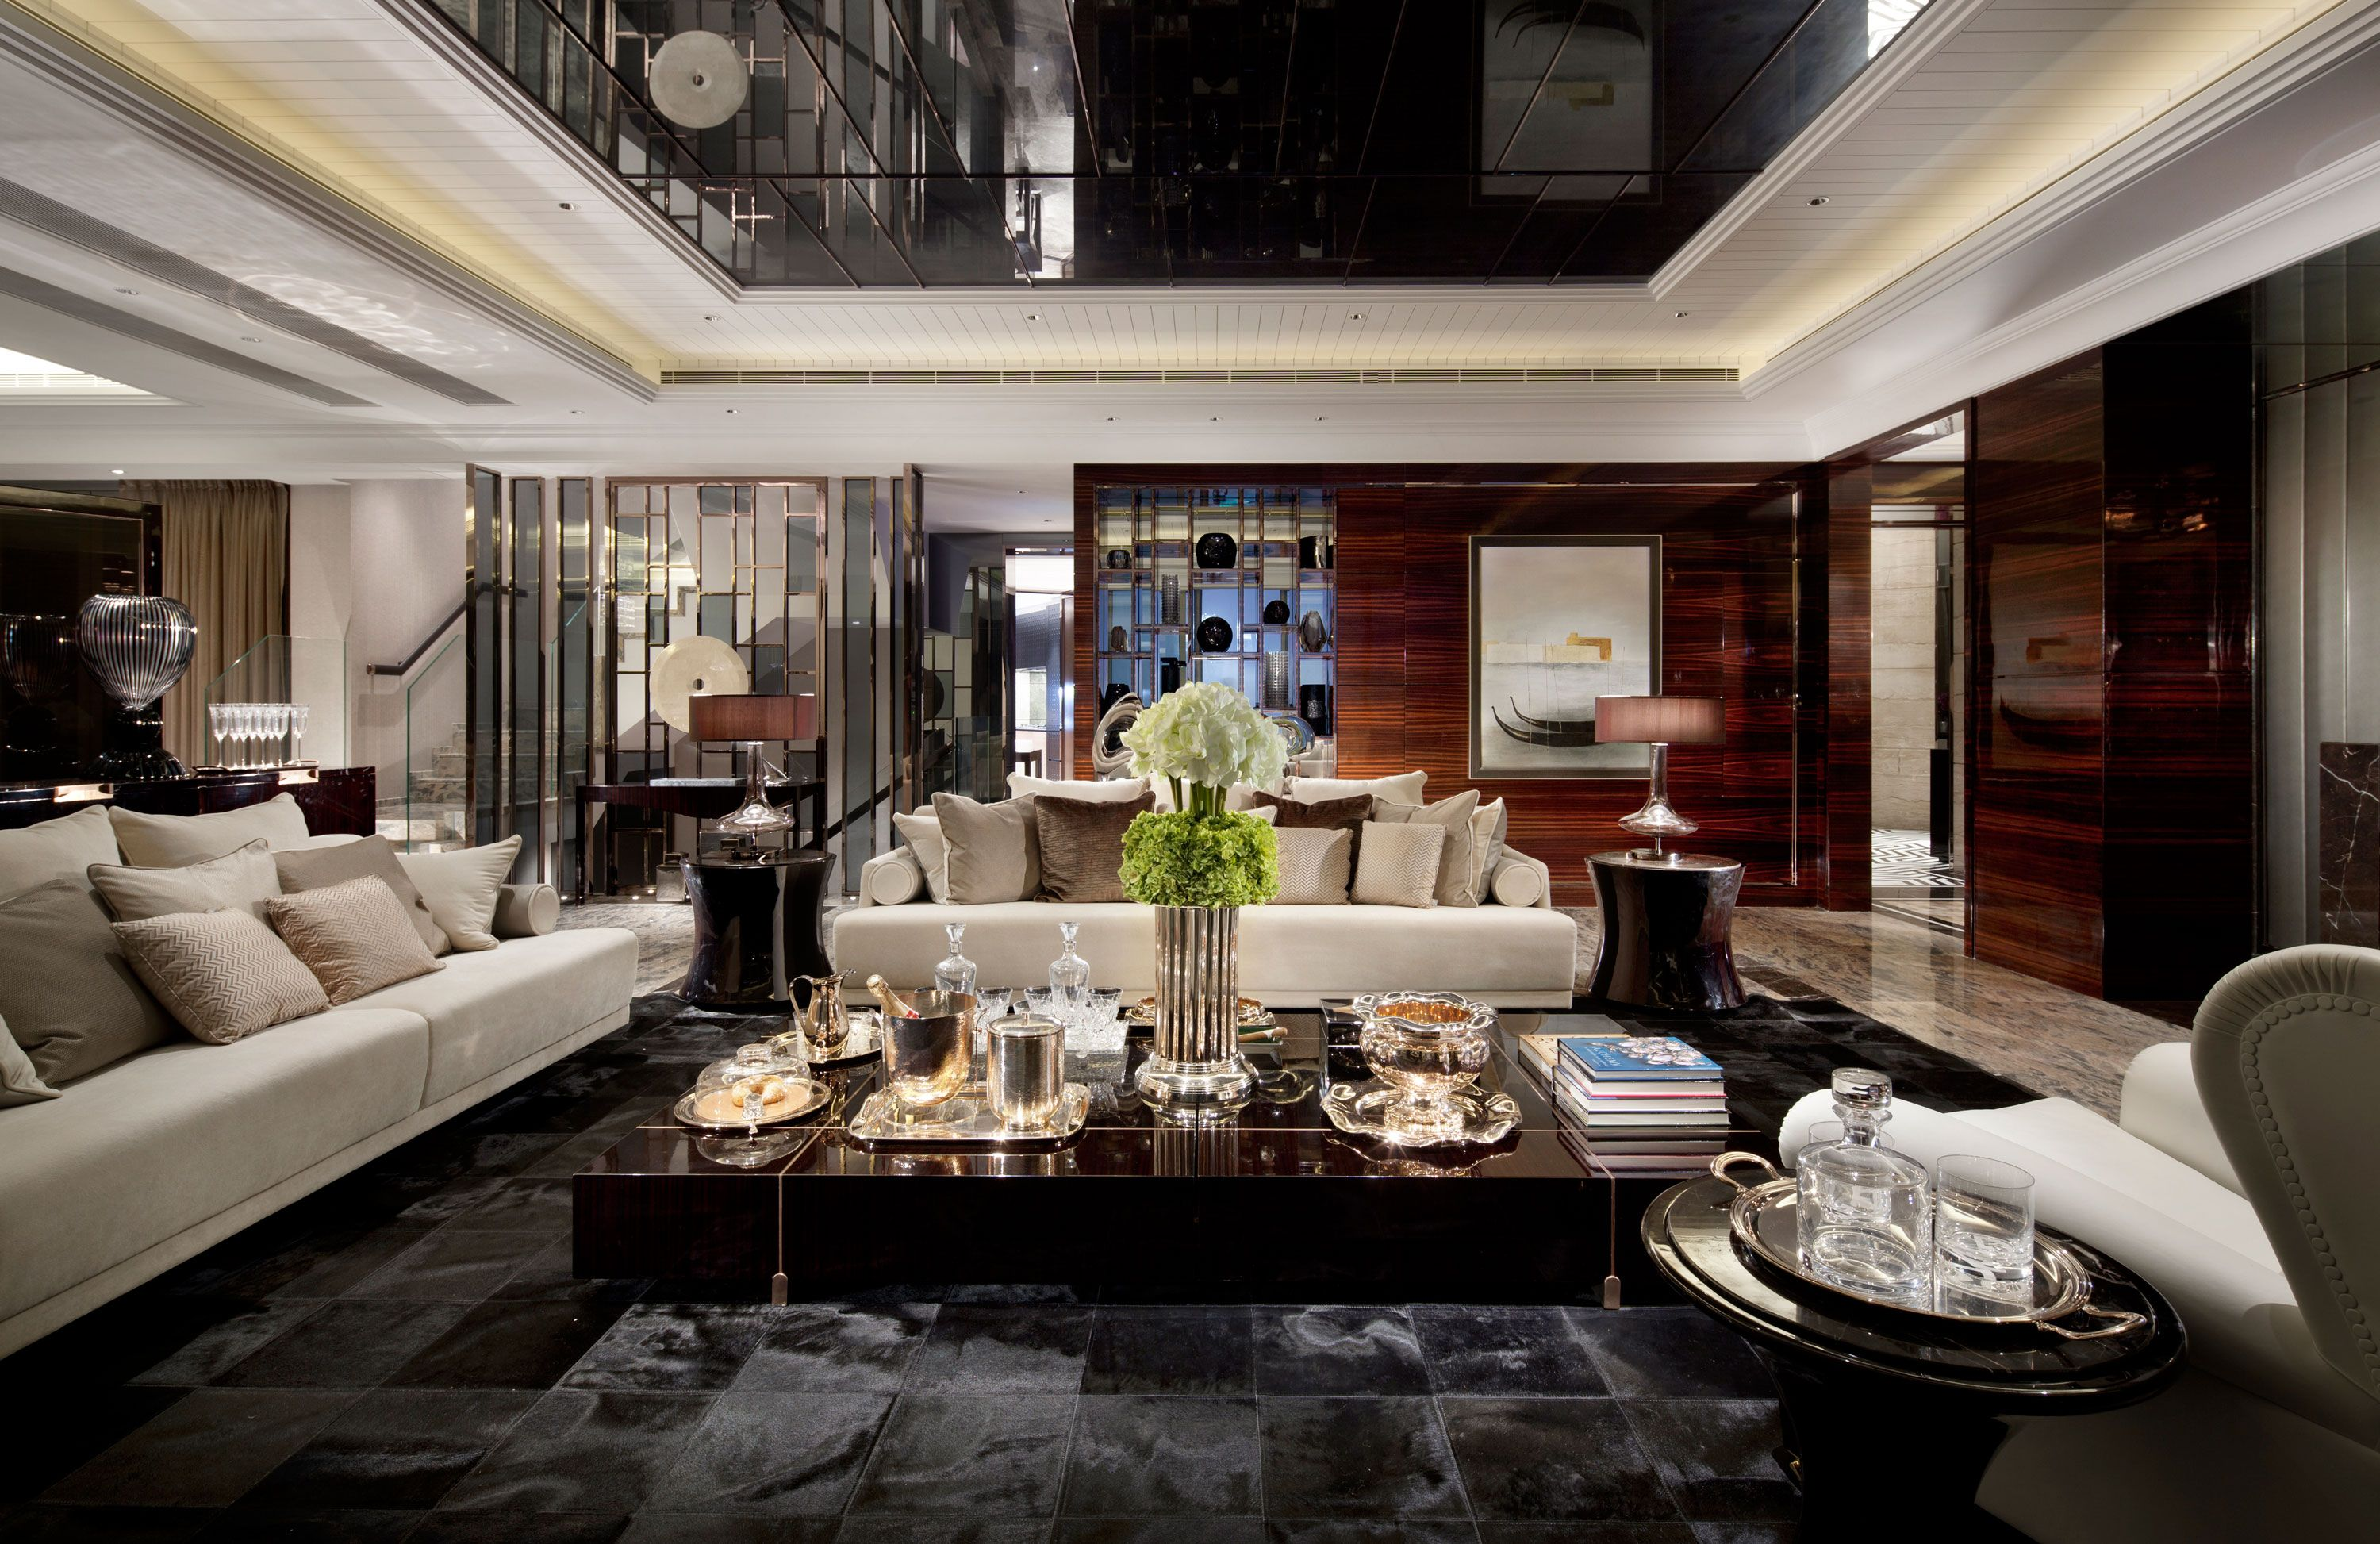 Images About Luxury Interior Designs On Pinterest Luxury - Luxury living room designs photos